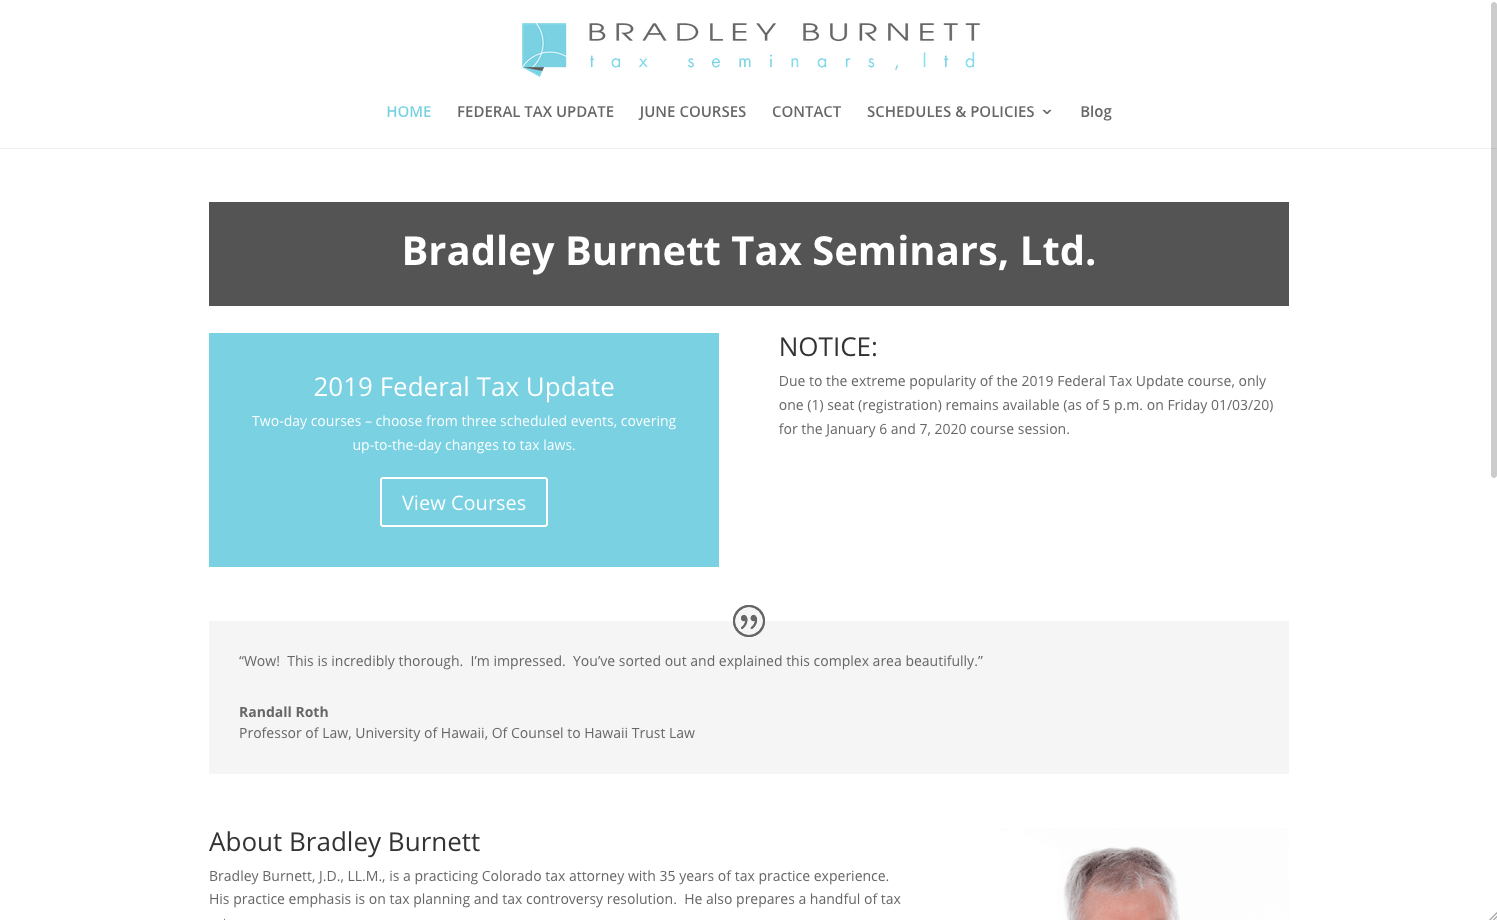 Bradley Burnett Tax Seminars